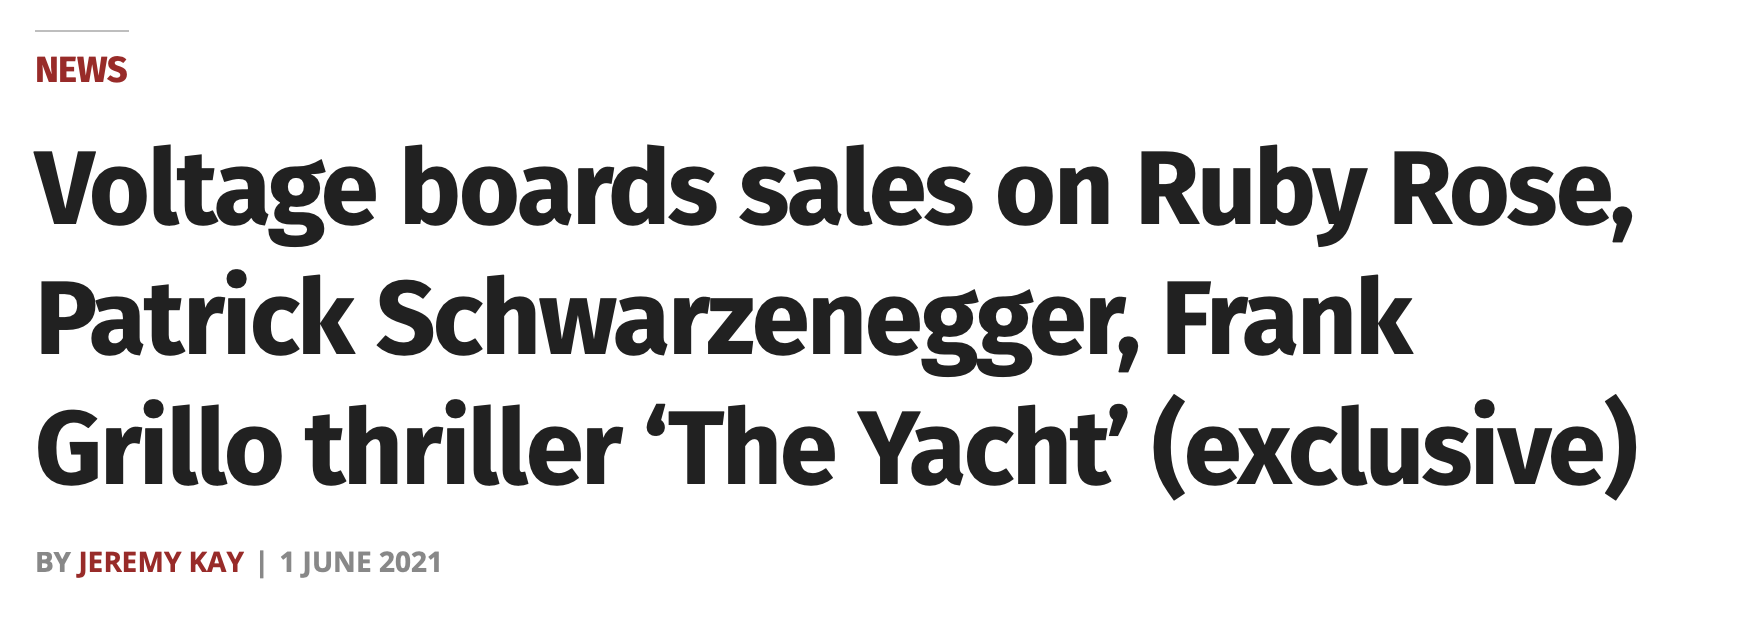 Voltage boards sales on Ruby Rose, Patrick Schwarzenegger, Frank Grillo thriller 'The Yacht'